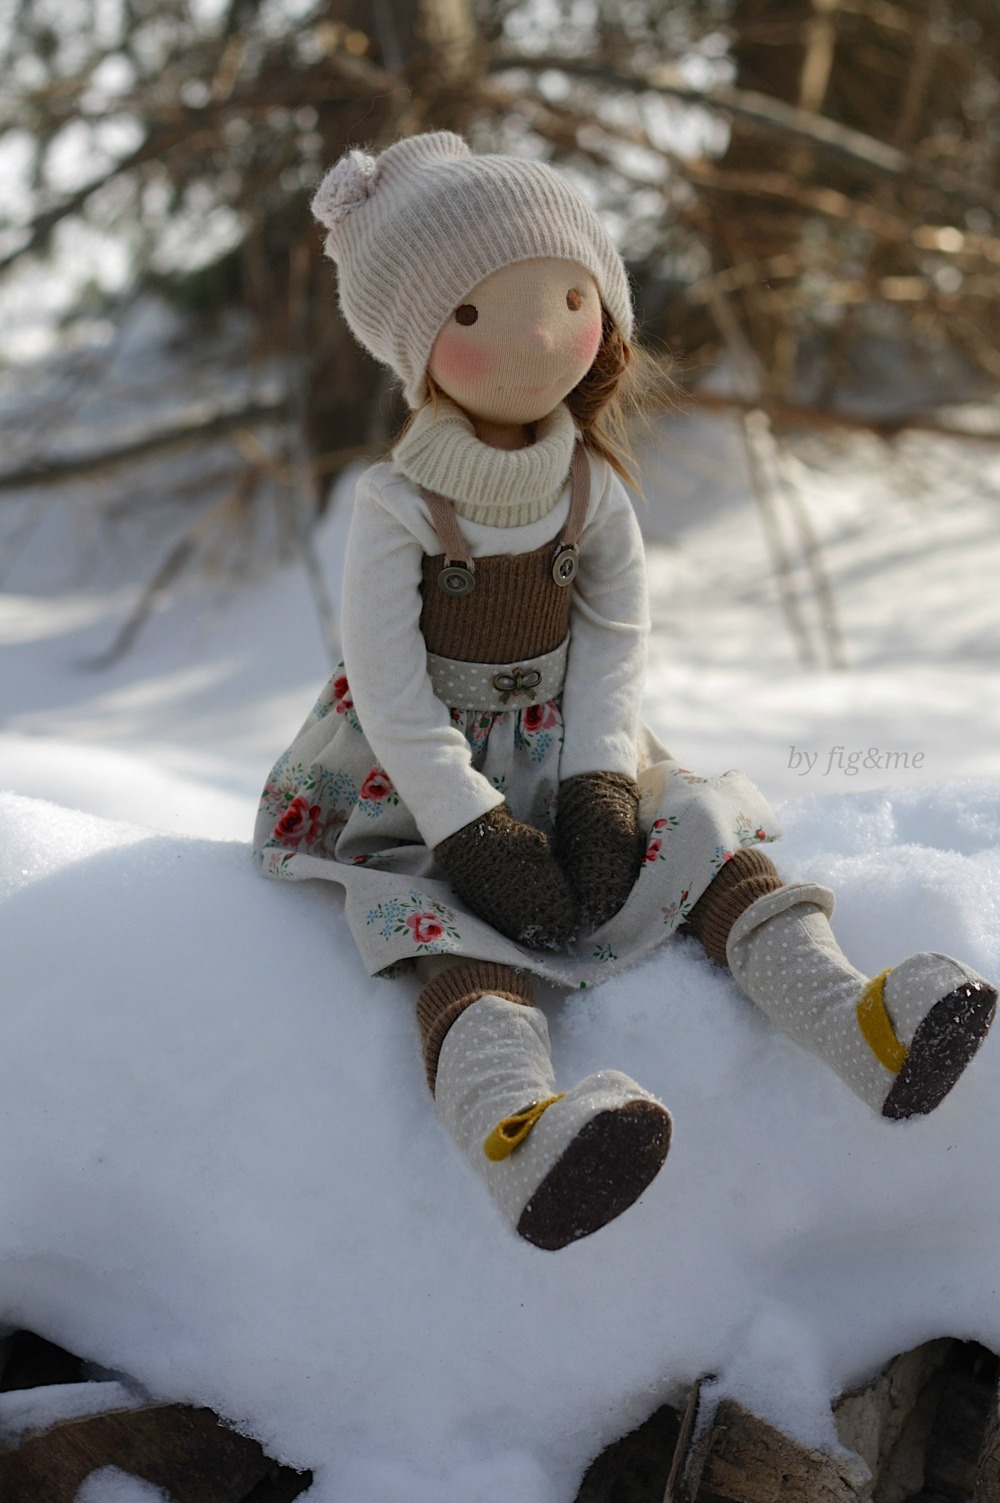 Winny, a Petite Fig cloth doll by Fig and me